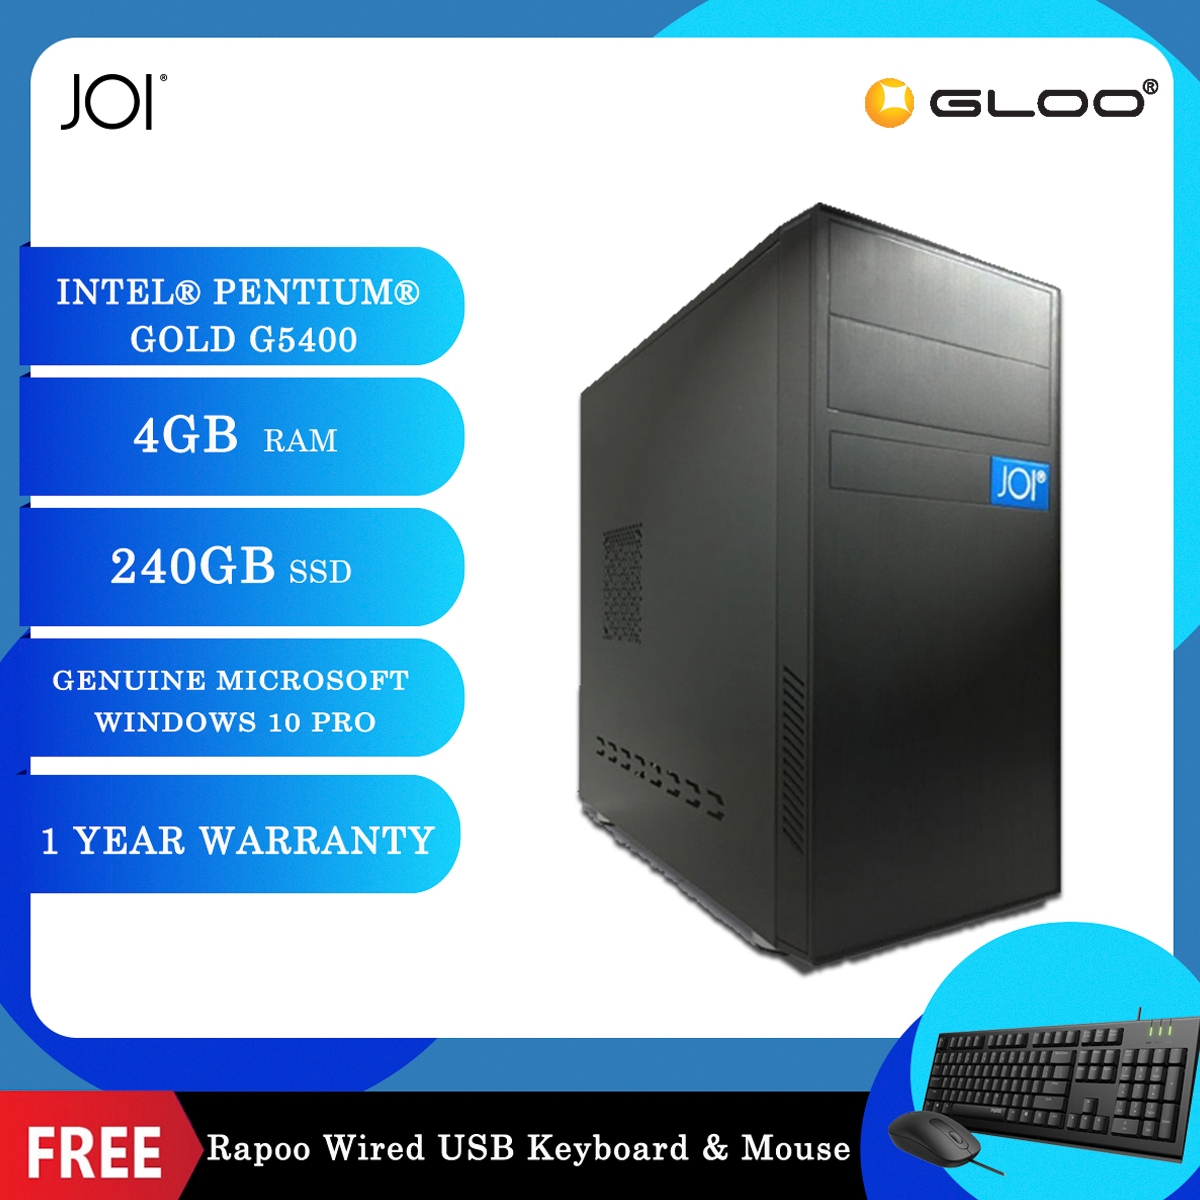 JOI PC 225 (Intel Pentium Gold G5400,4GB RAM,240GB SSD,W10Pro) Free Combo Wired Keyboard+Mouse